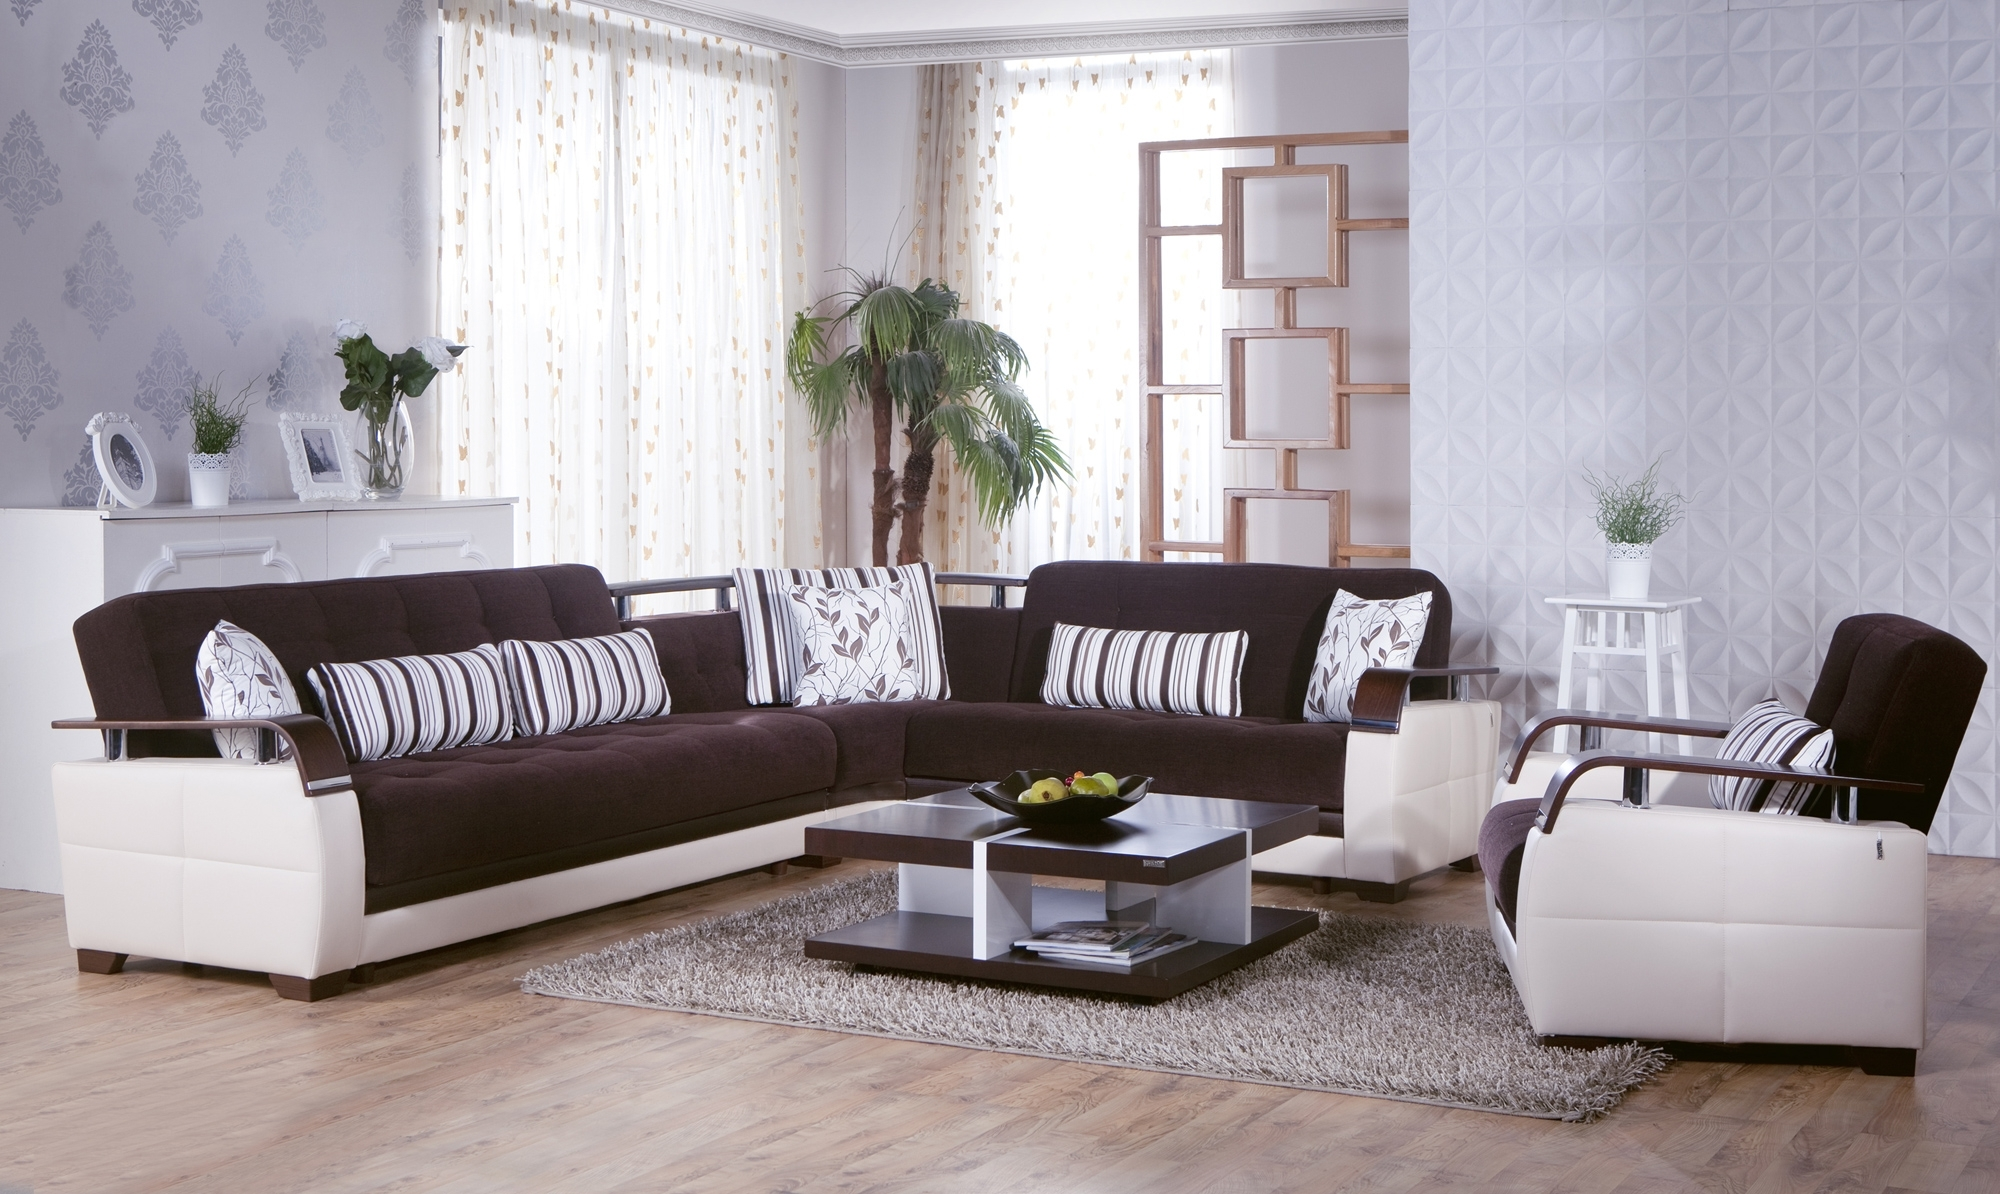 Natural Colins Brown Sectional Sofasunset | Brown Sectional Sofa With Regard To El Dorado Sectional Sofas (Photo 8 of 10)